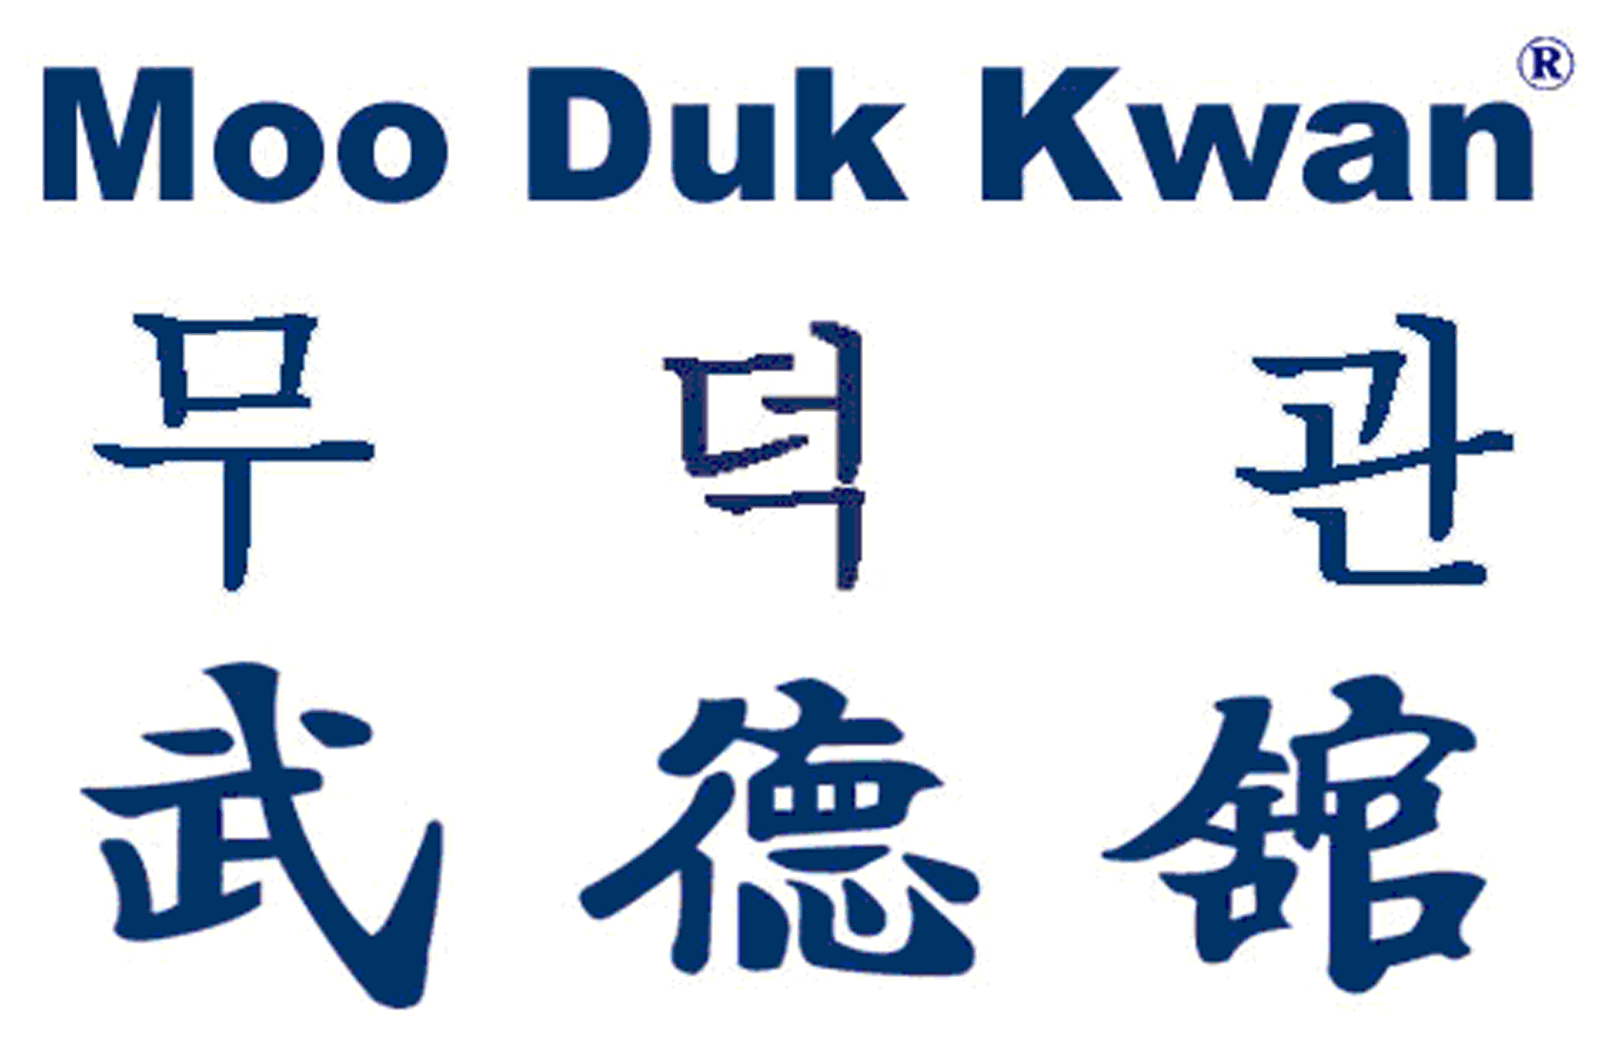 Korean Moo Duk Kwan Trademark